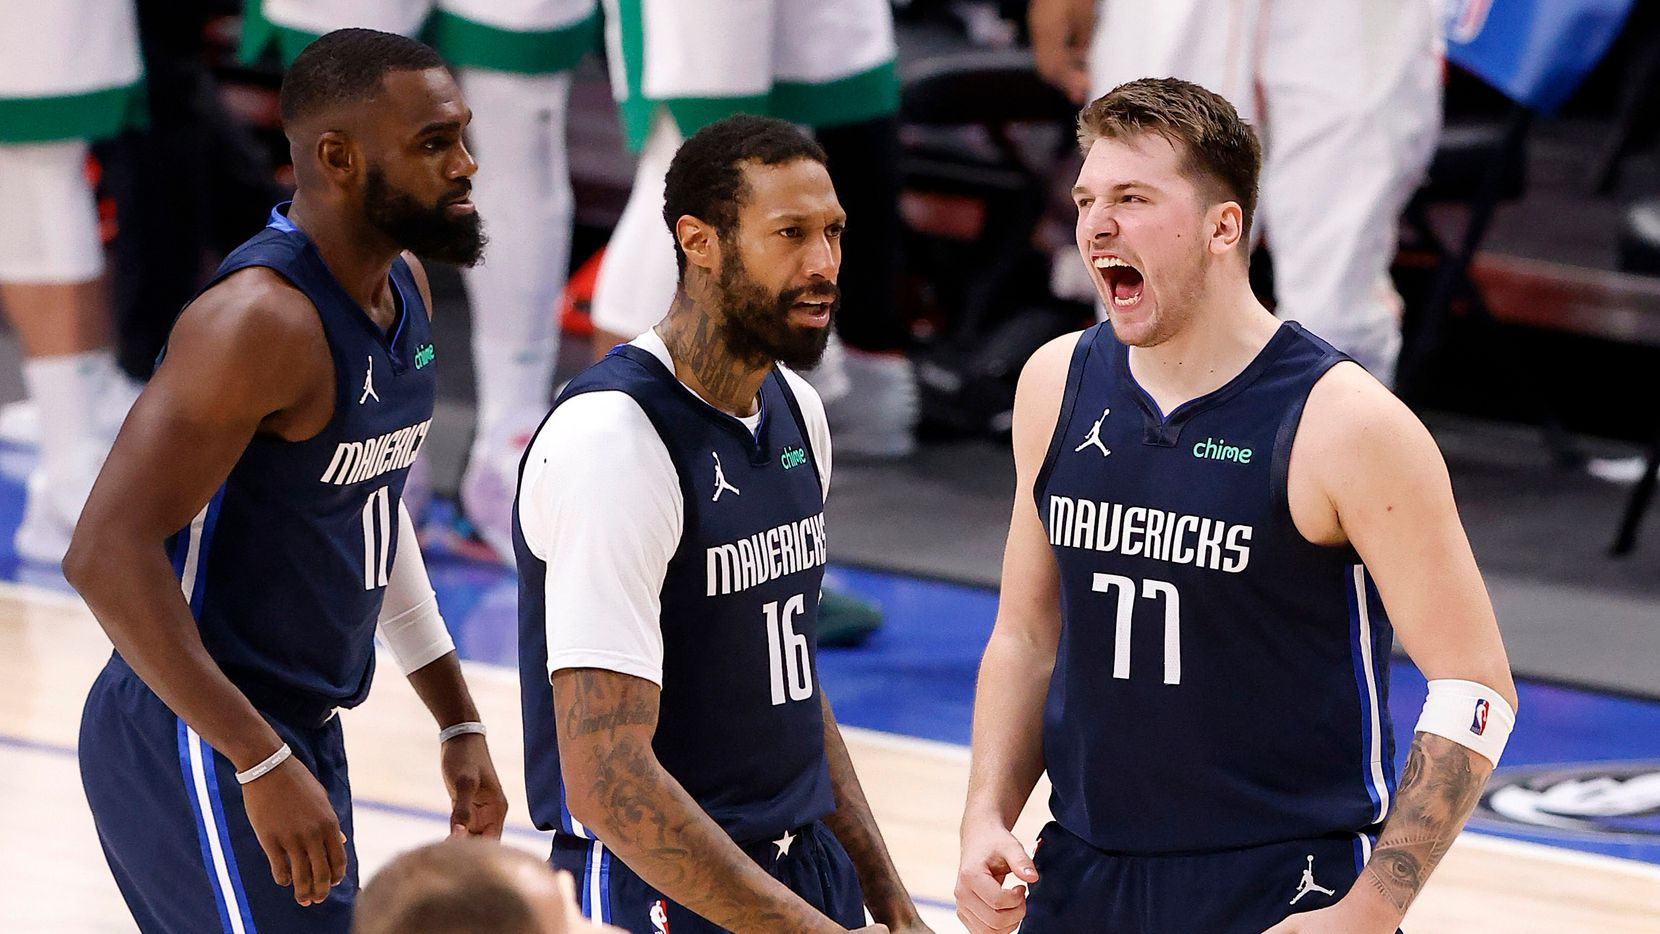 Mavericks guard Luka Doncic (77) celebrates his game-winning shot with forward James Johnson (16) at the end of a game against the Celtics in American Airlines Center in Dallas on Tuesday, Feb. 23, 2021.